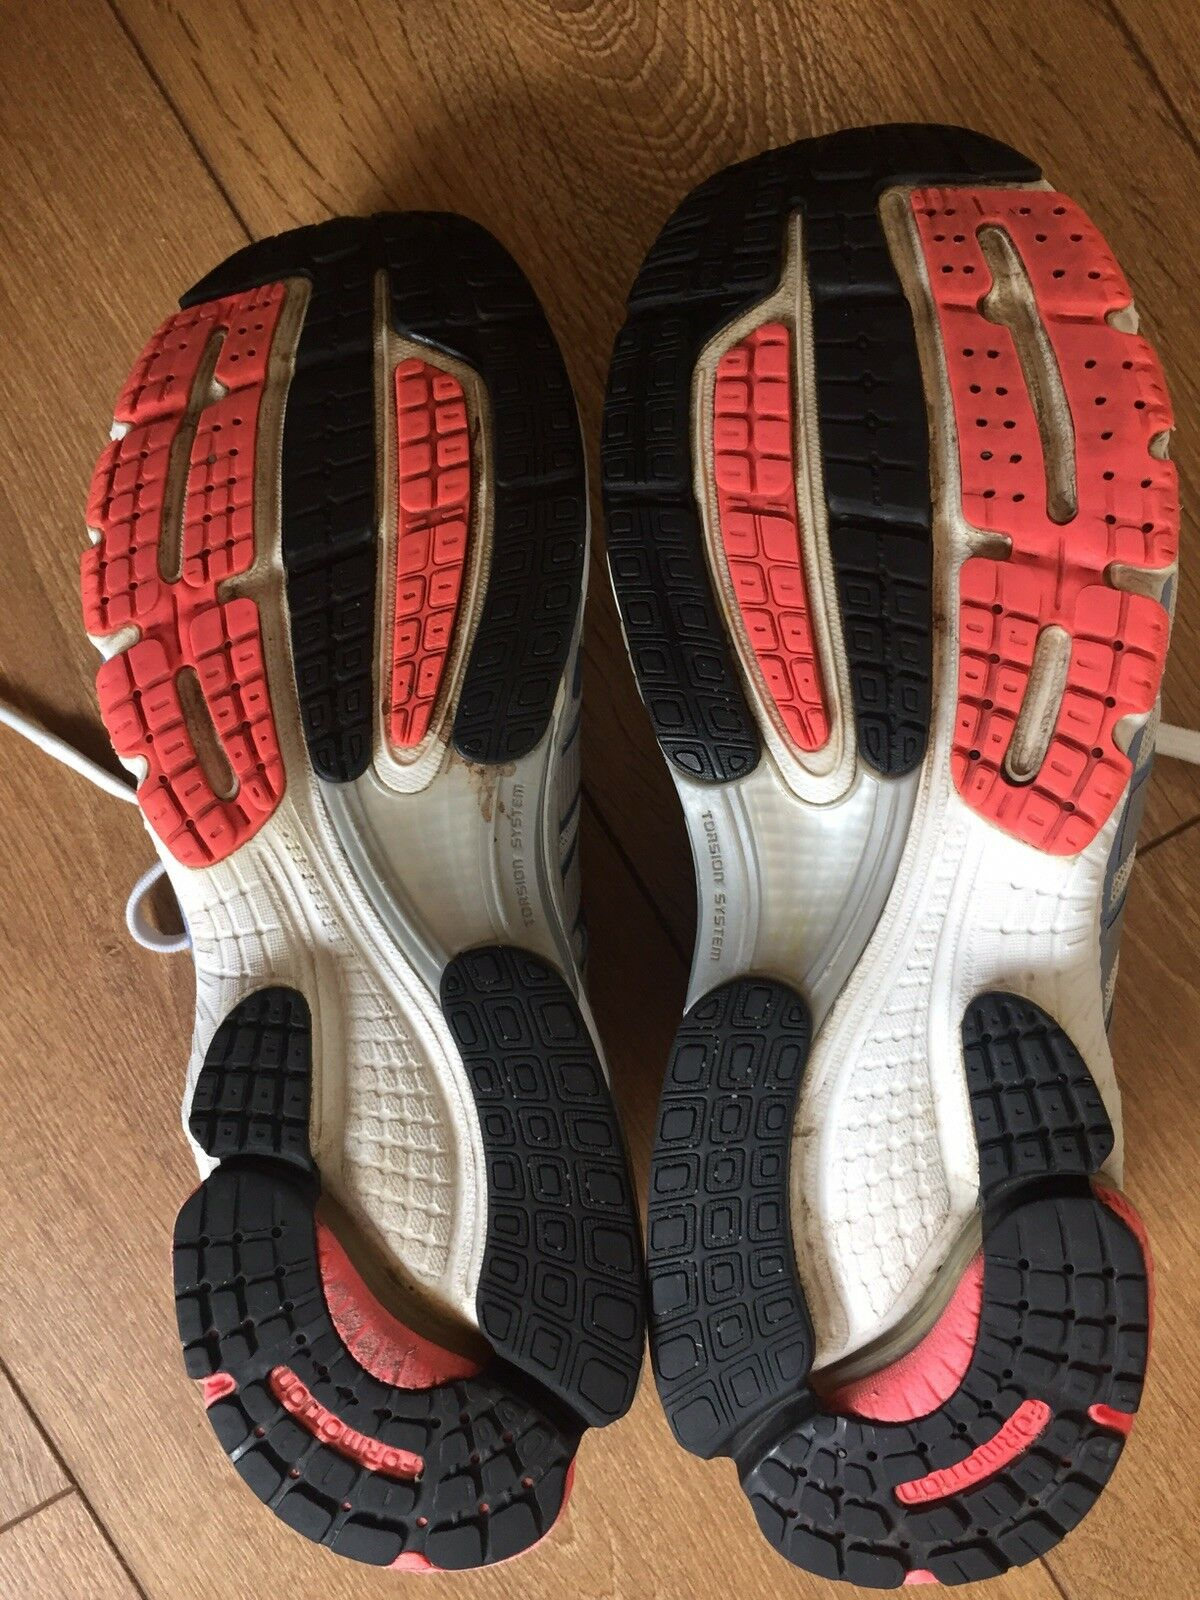 WoHommes 's Torsion Adidas Running Baskets Formotion, Torsion 's system, Taille Royaume uni 5.5 6643a0